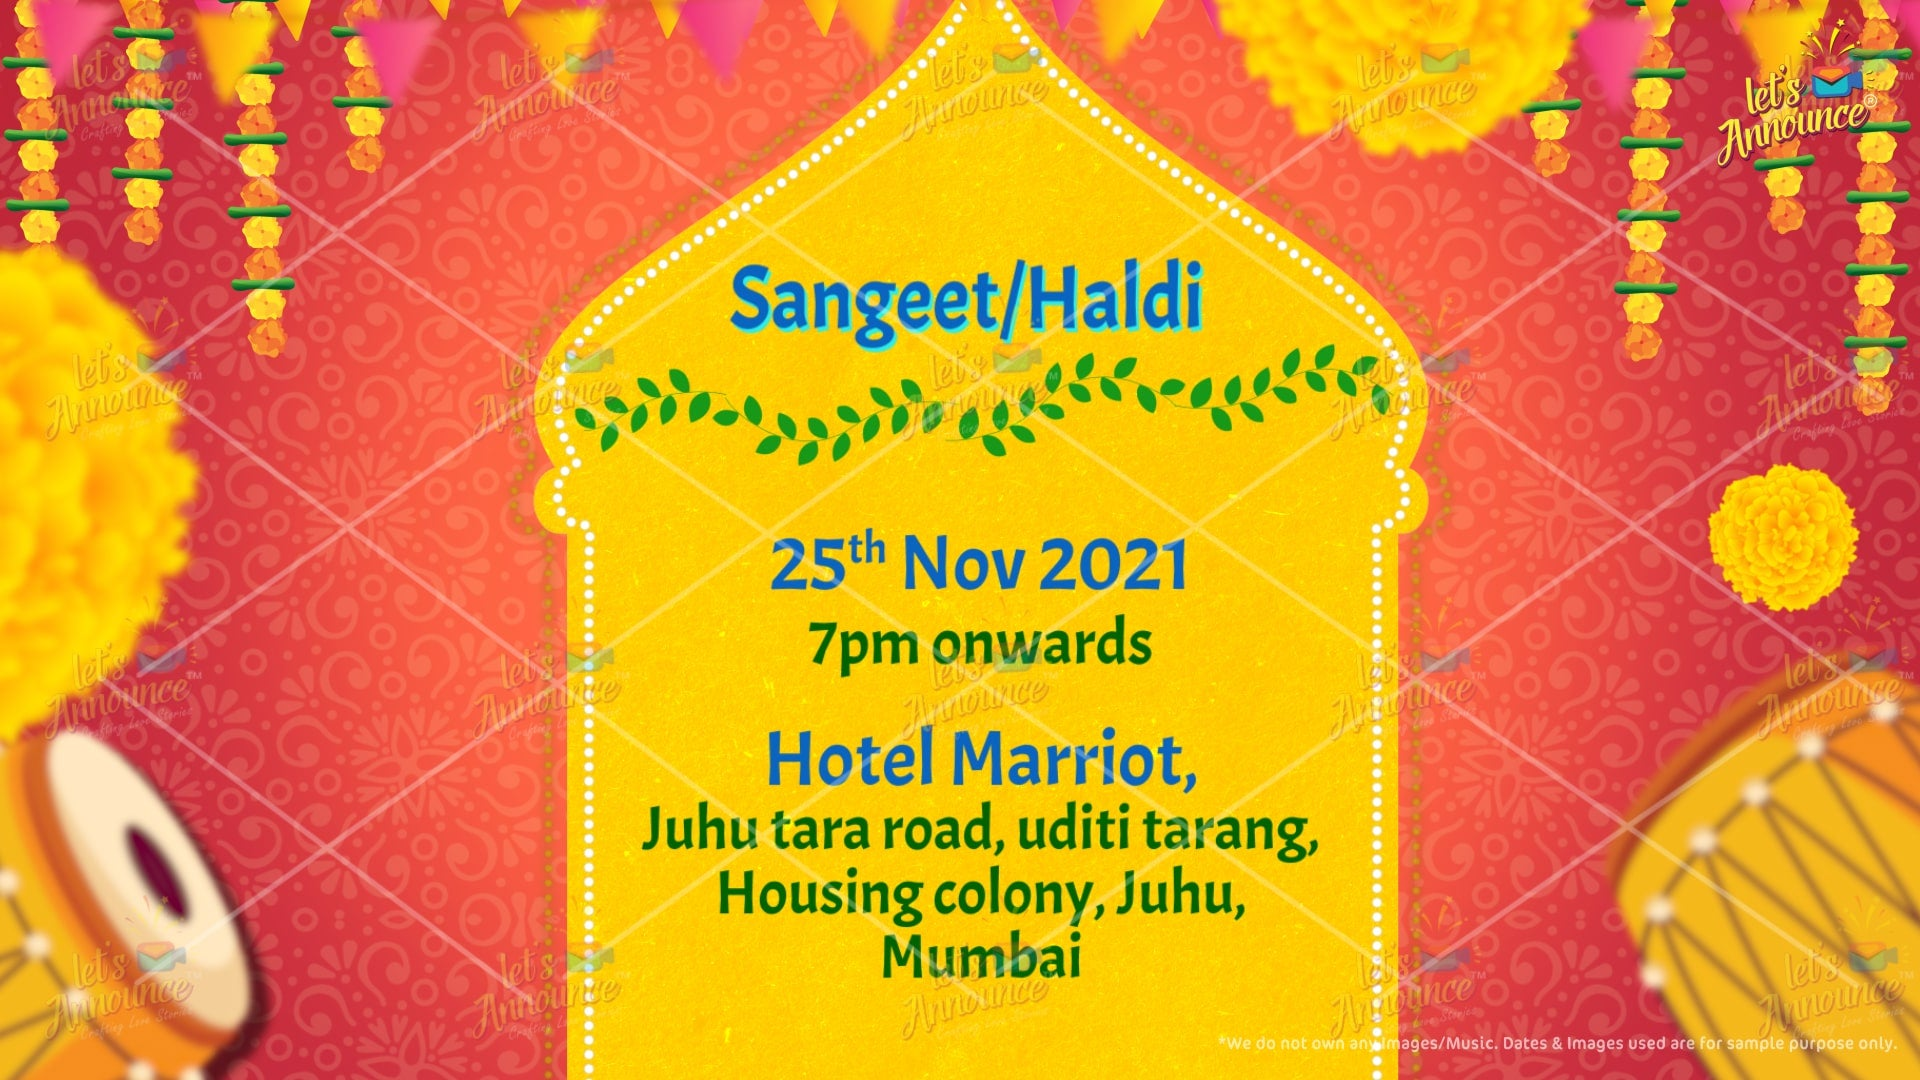 Sangeet Invitation by www.letsannounc.com